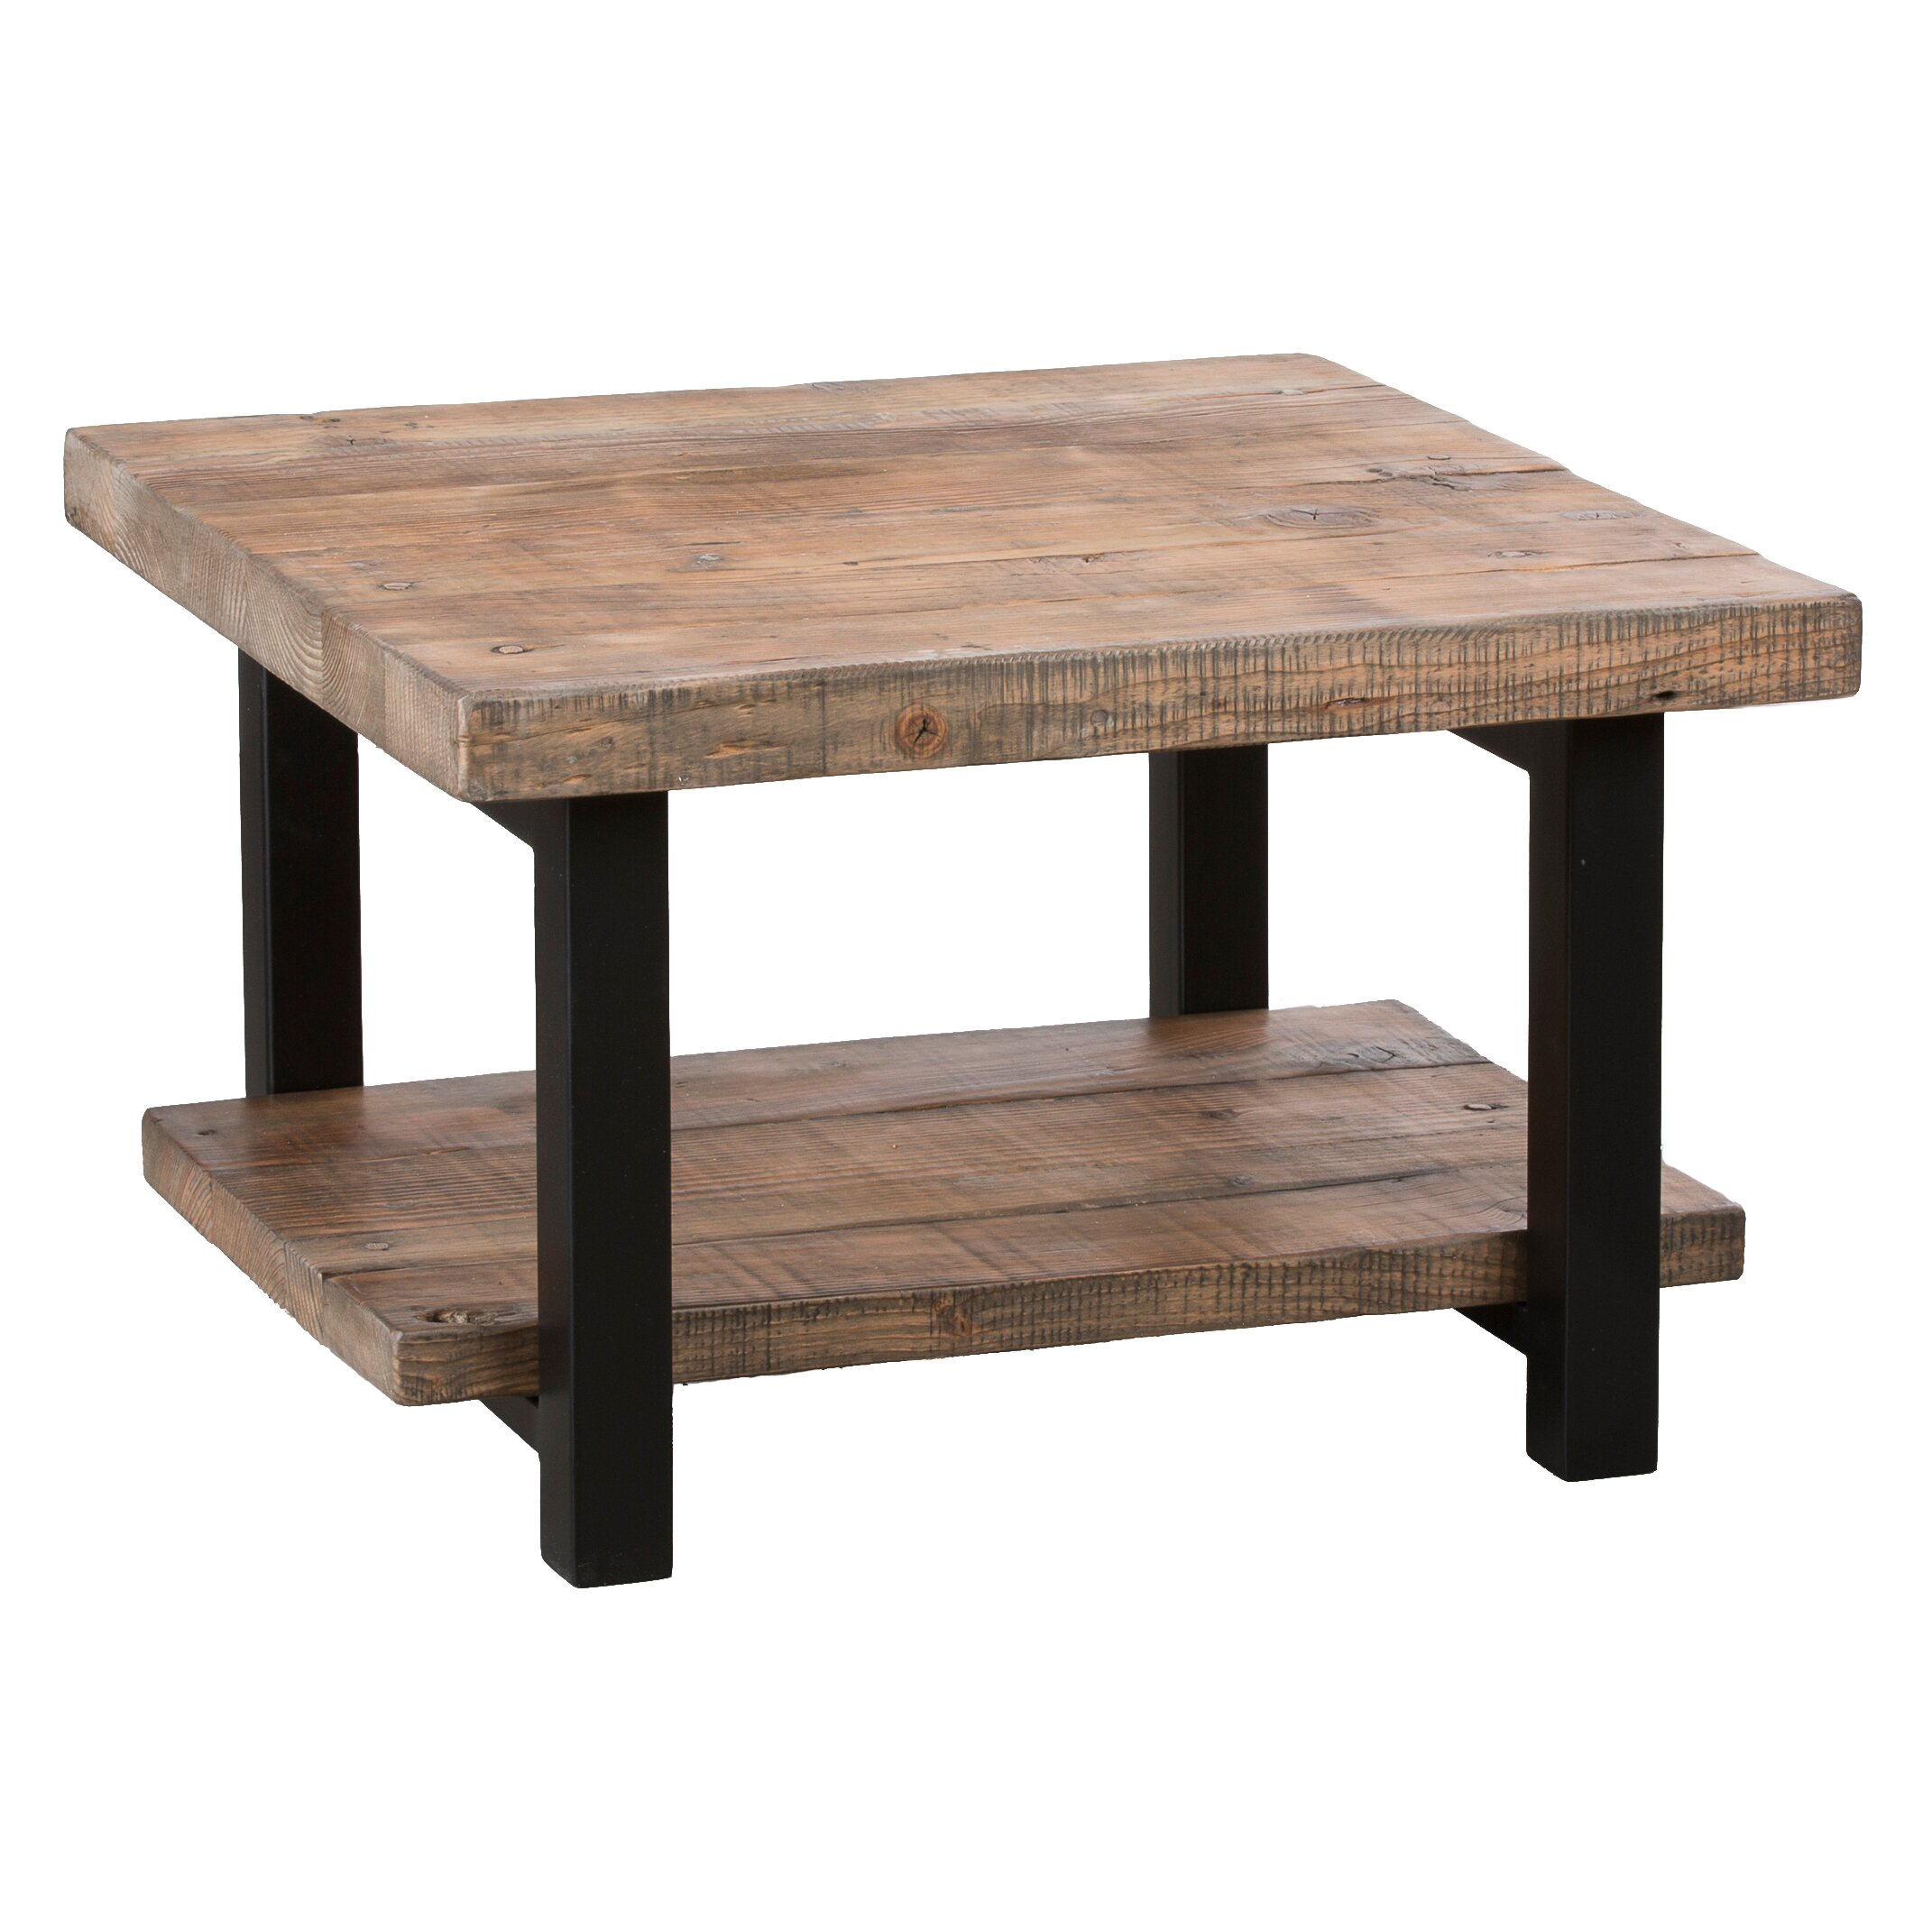 "Square Coffee Table: Loon Peak Somers 27"" Reclaimed Wood Square Coffee Table"